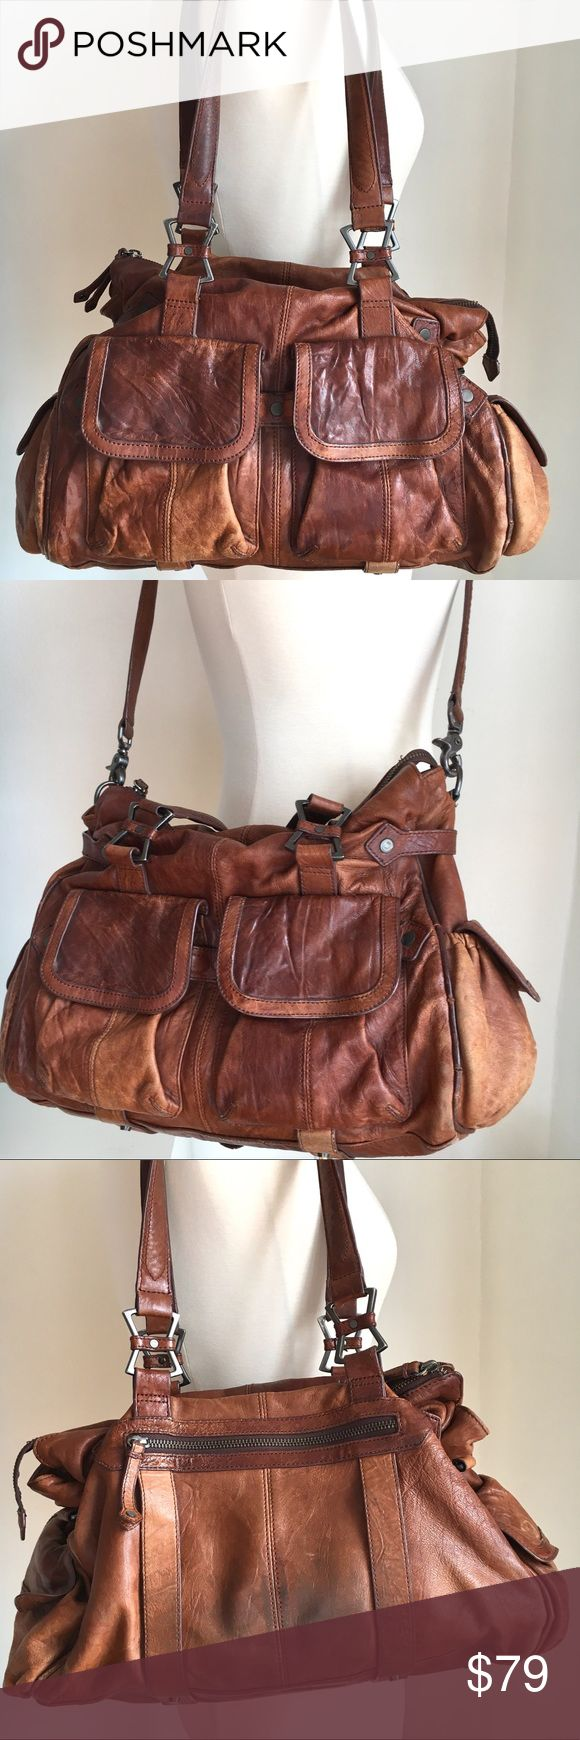 Junior Drake Leather Shoulder Cross body Satchel Junior Drake Leather Shoulder and  Cross body Hobo Style Satchel Tote in Cognac Color. Butter soft Italian leather imo gets better with age. has detachable Cross Body strap.. Many pocket compartments.   Gently preowned. Has some normal wear marks and freying on the straps shown.  Pls review all photos and use the zoom feature for condition. Junior Drake Bags